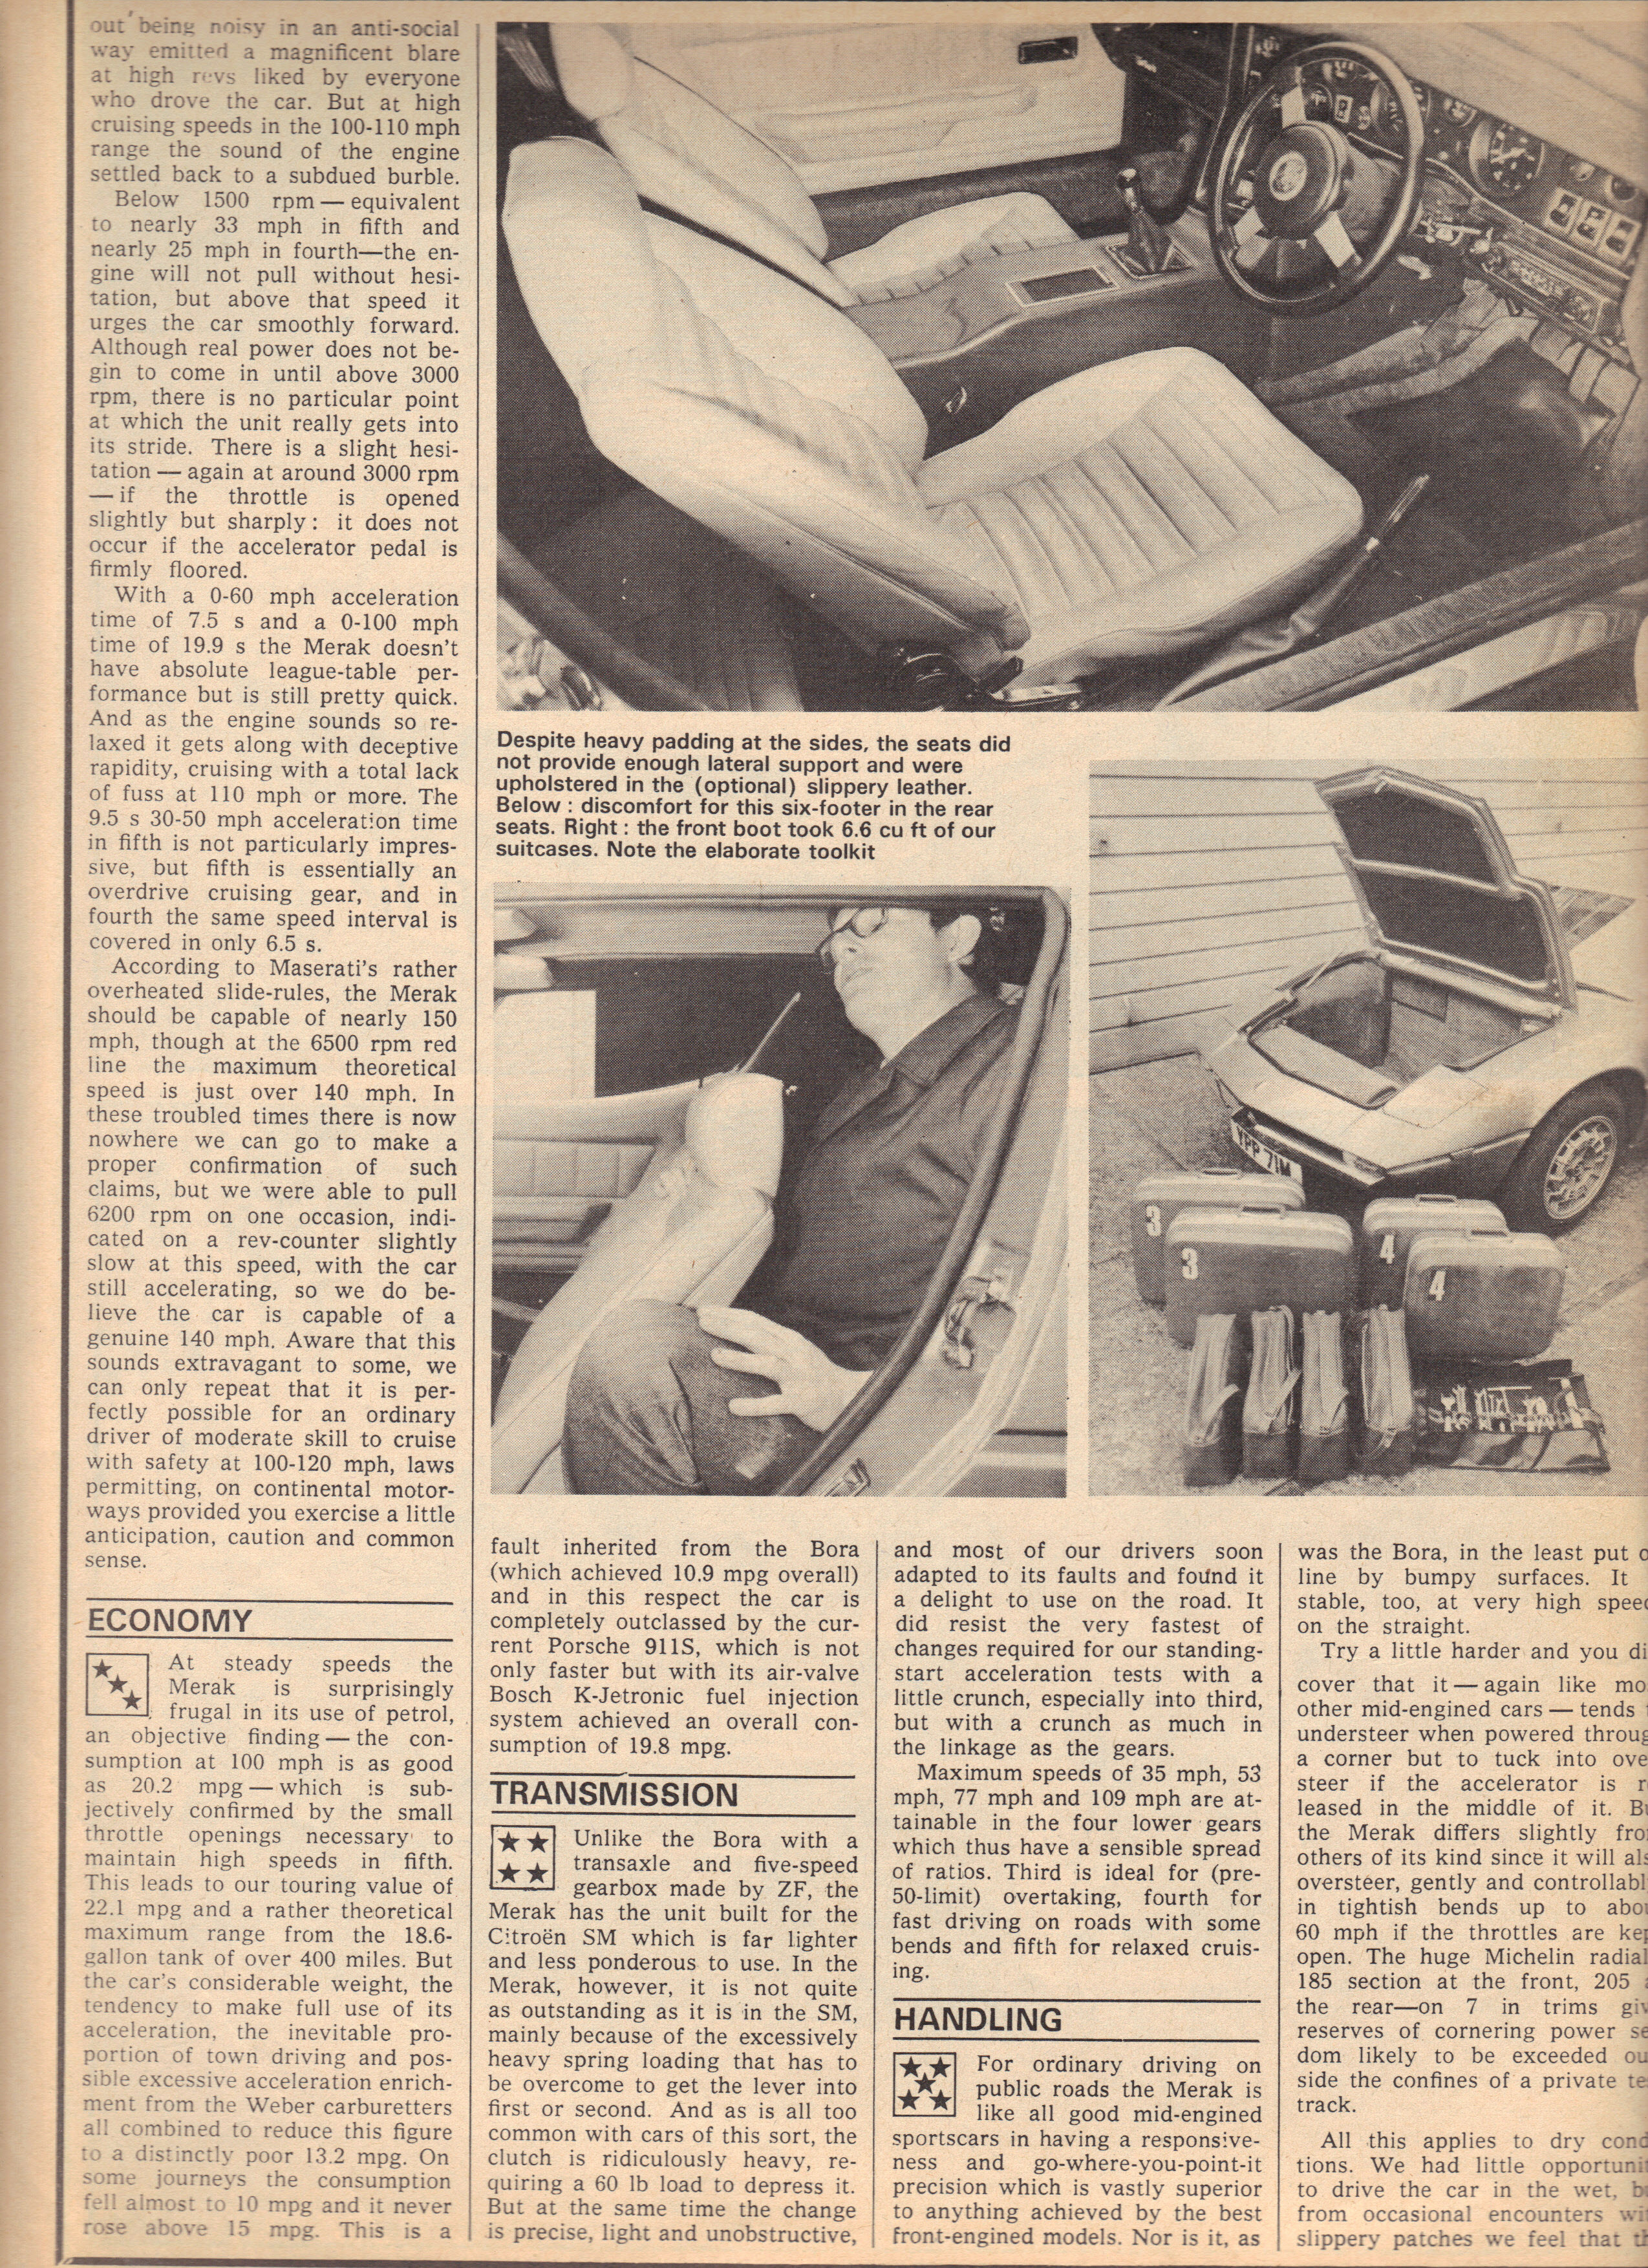 Copyright Motor Magazine 1974, All rights reserved